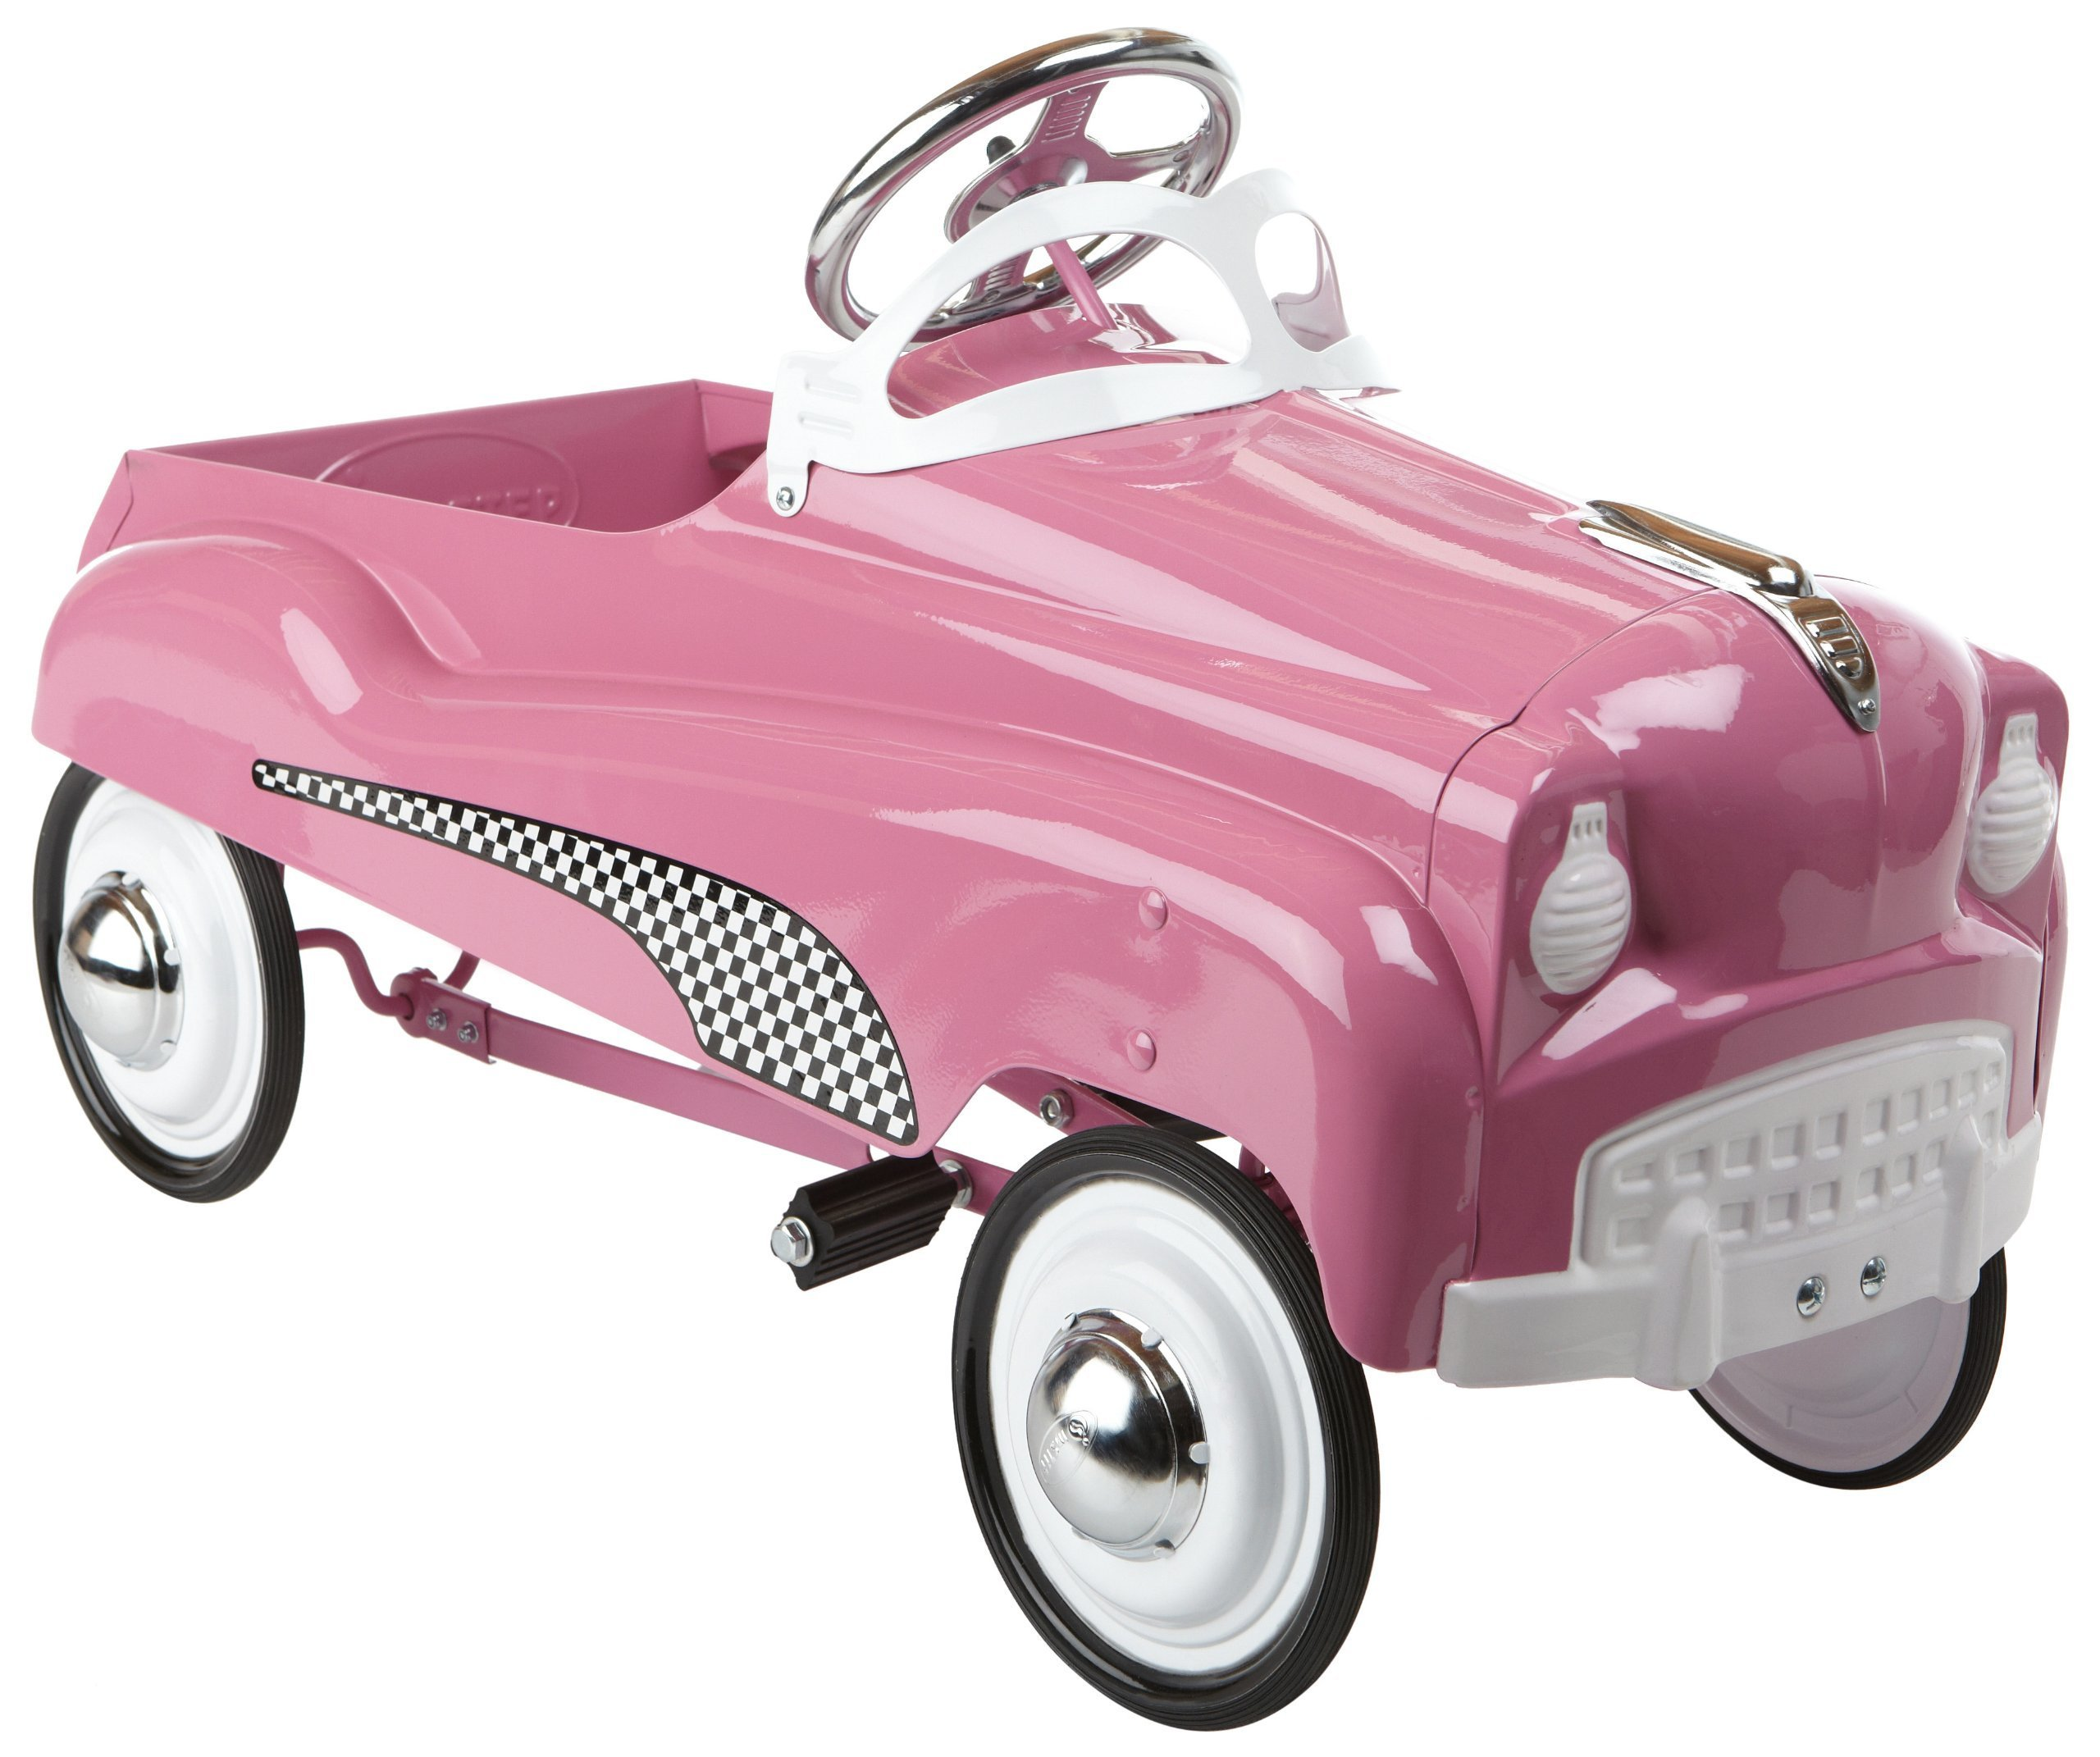 Pedal Car Riding Toy Cars Kids Wheels Pink Gift Children Vintage